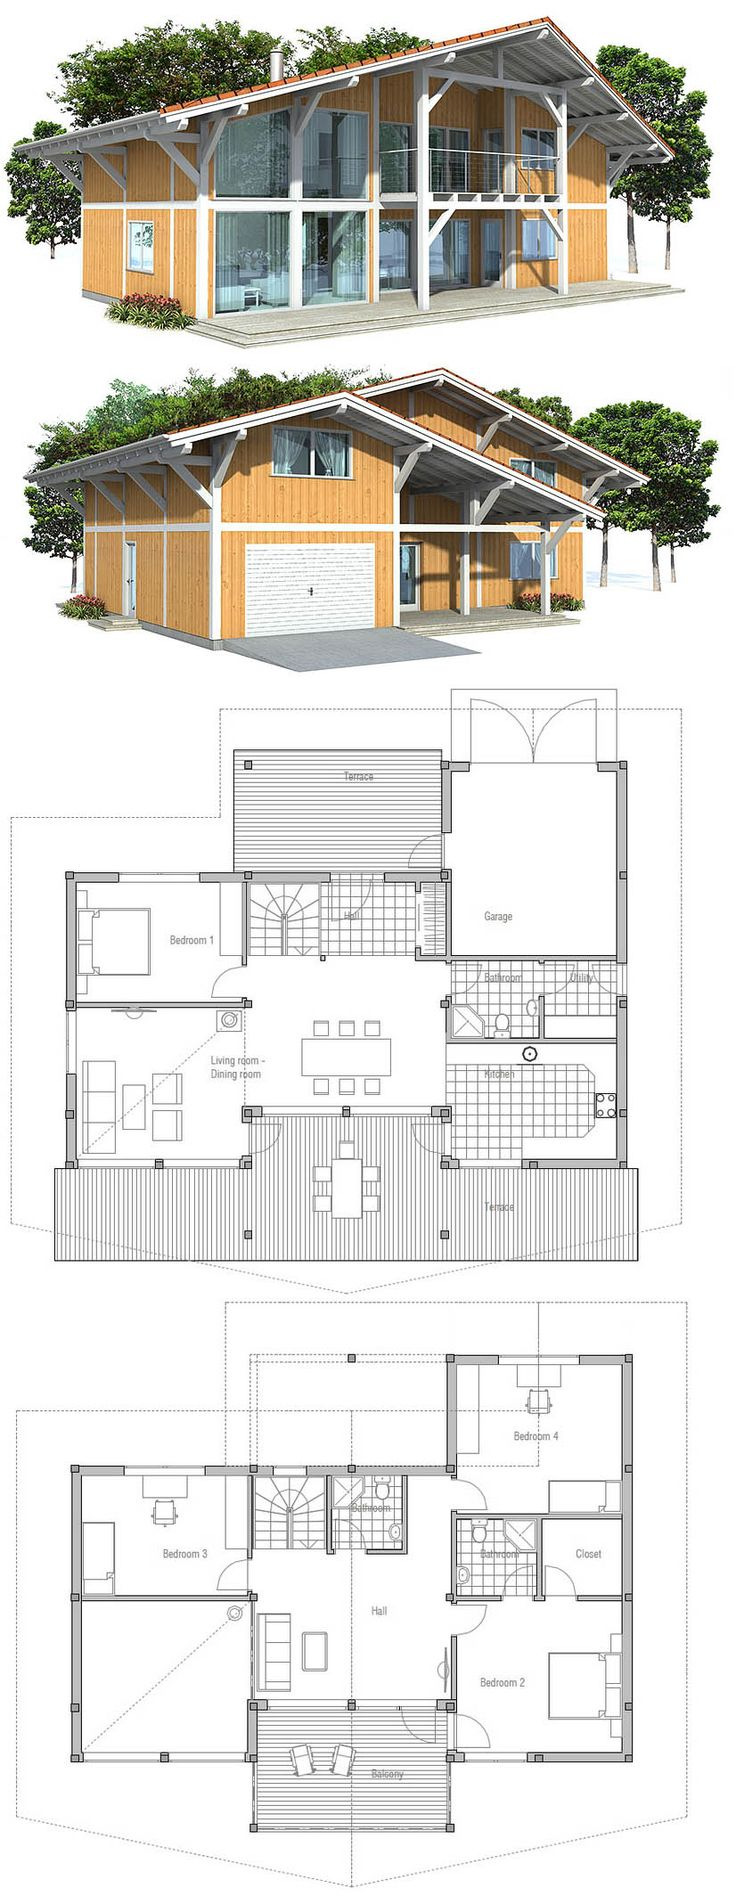 1000+ images about Small House Plans on Pinterest - ^